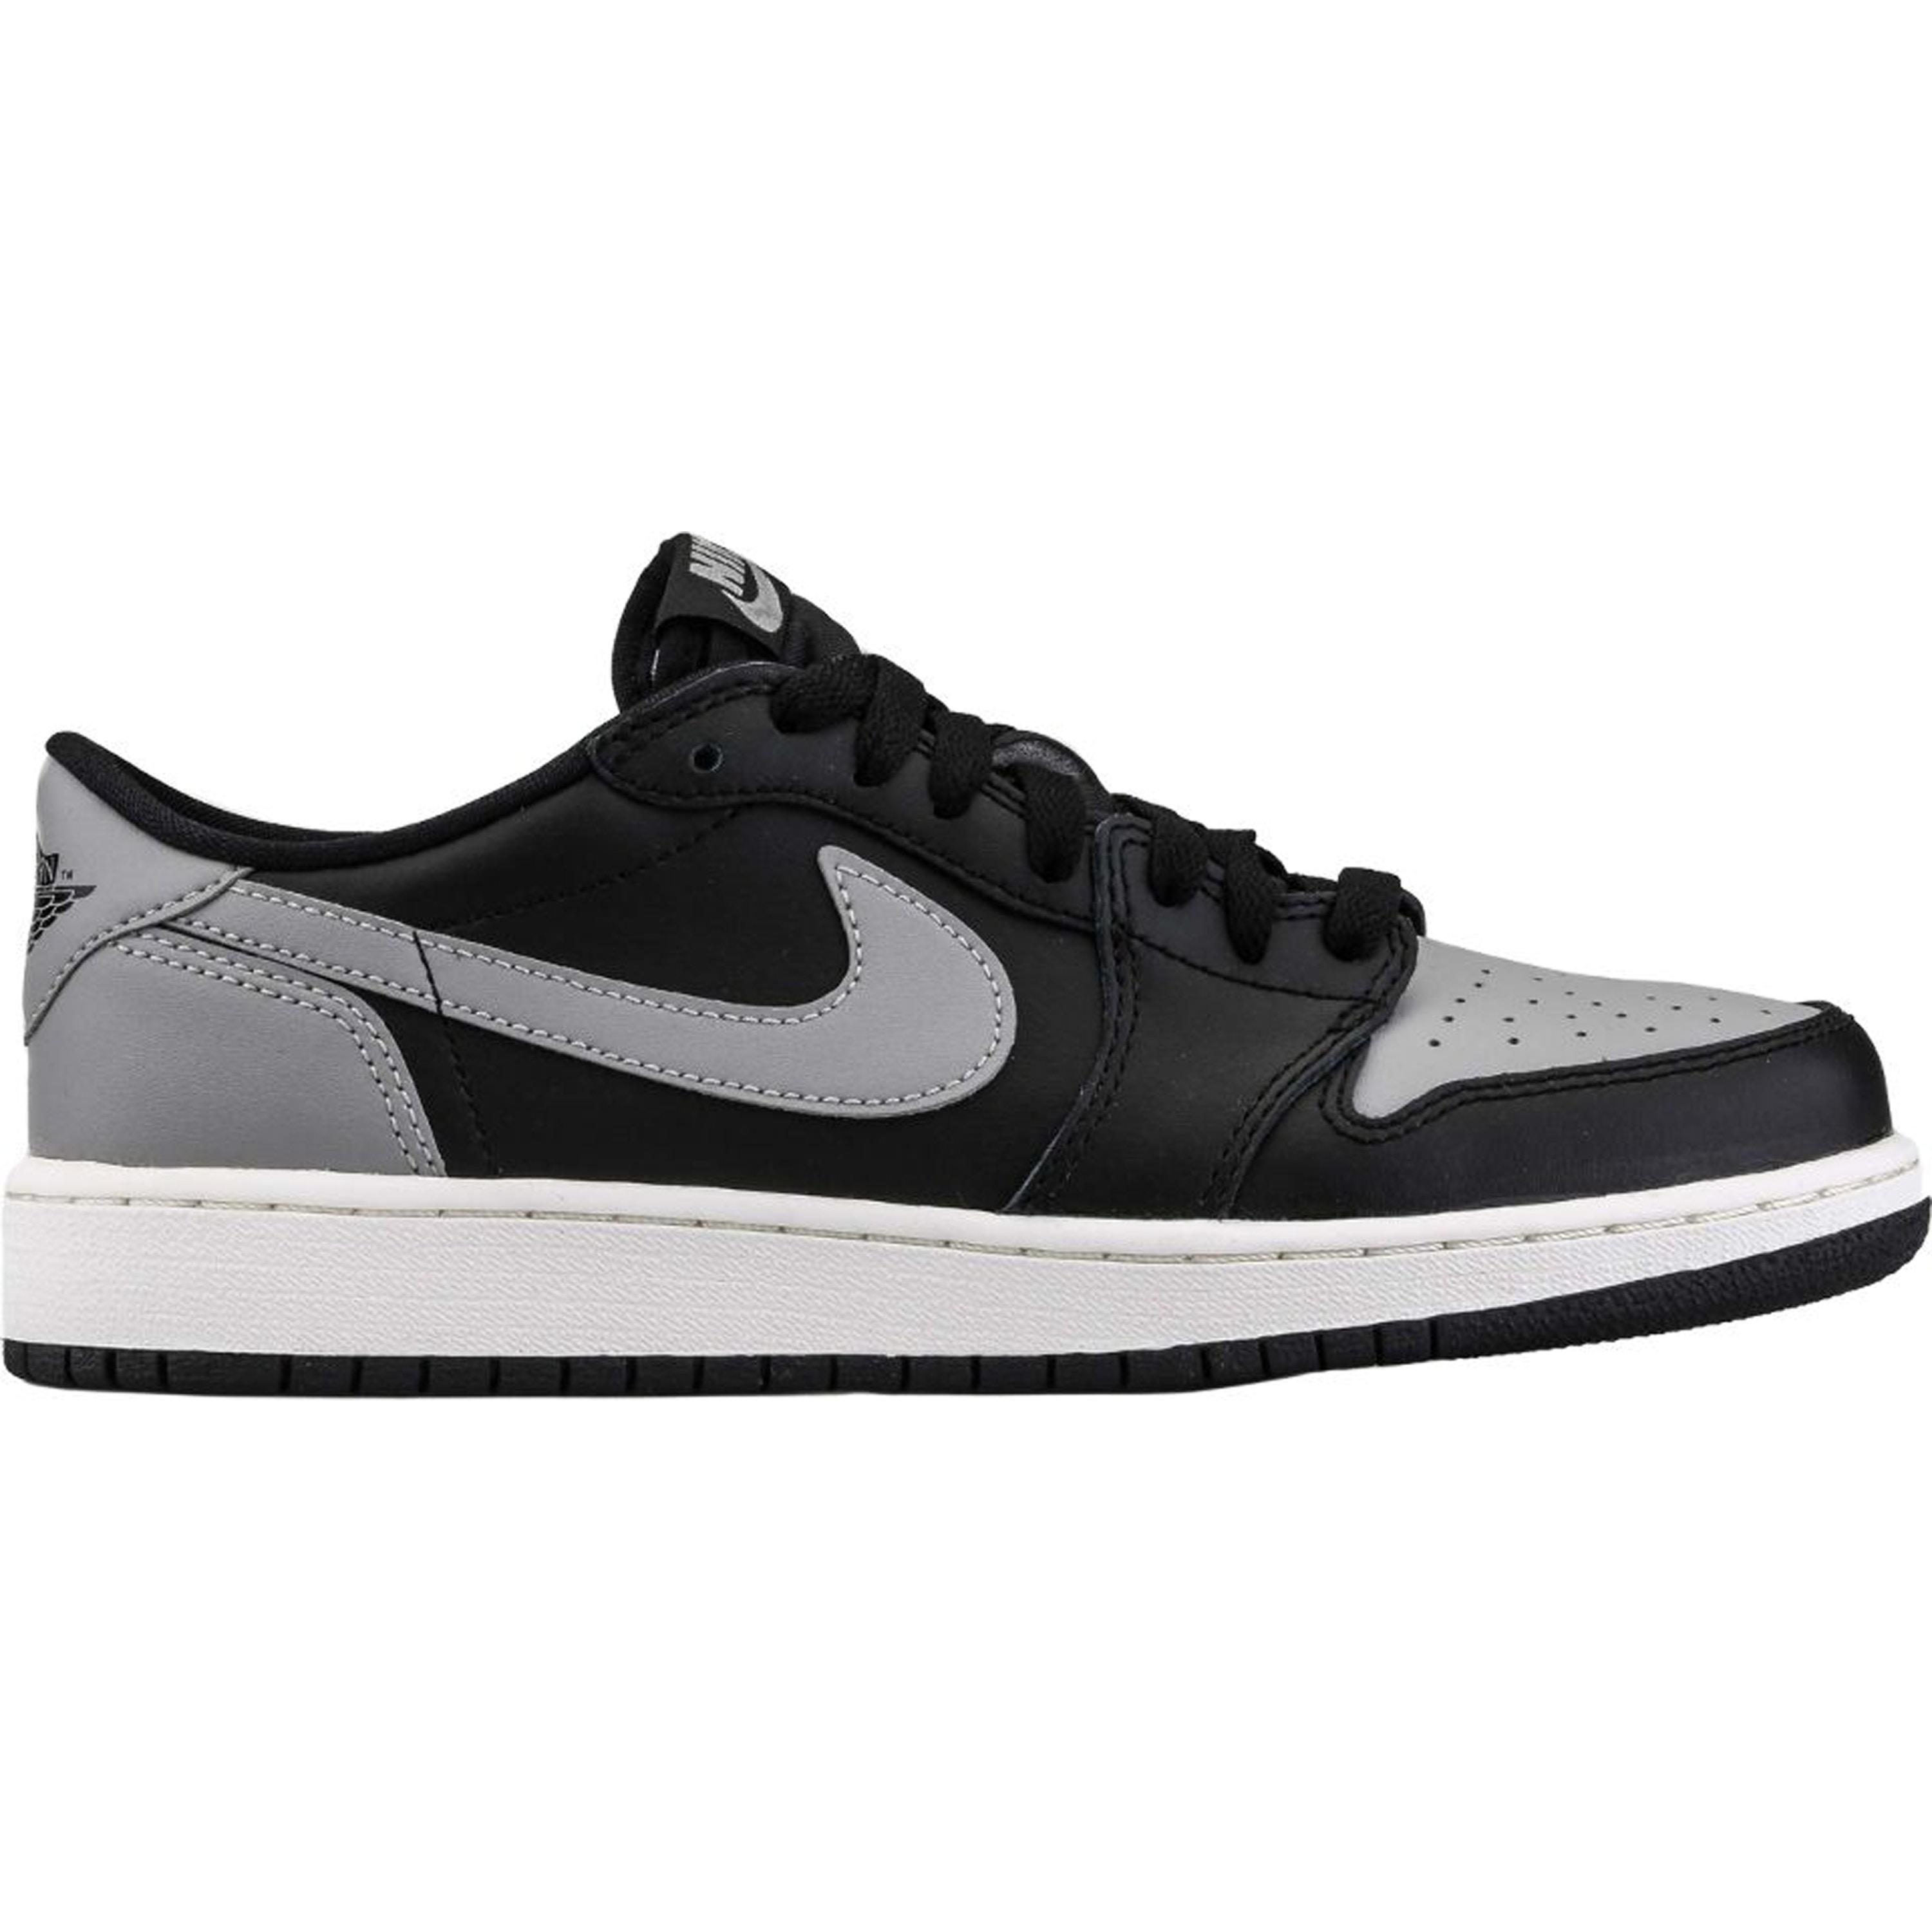 Jordan 1 Retro Low Shadow (GS) (709999-003)